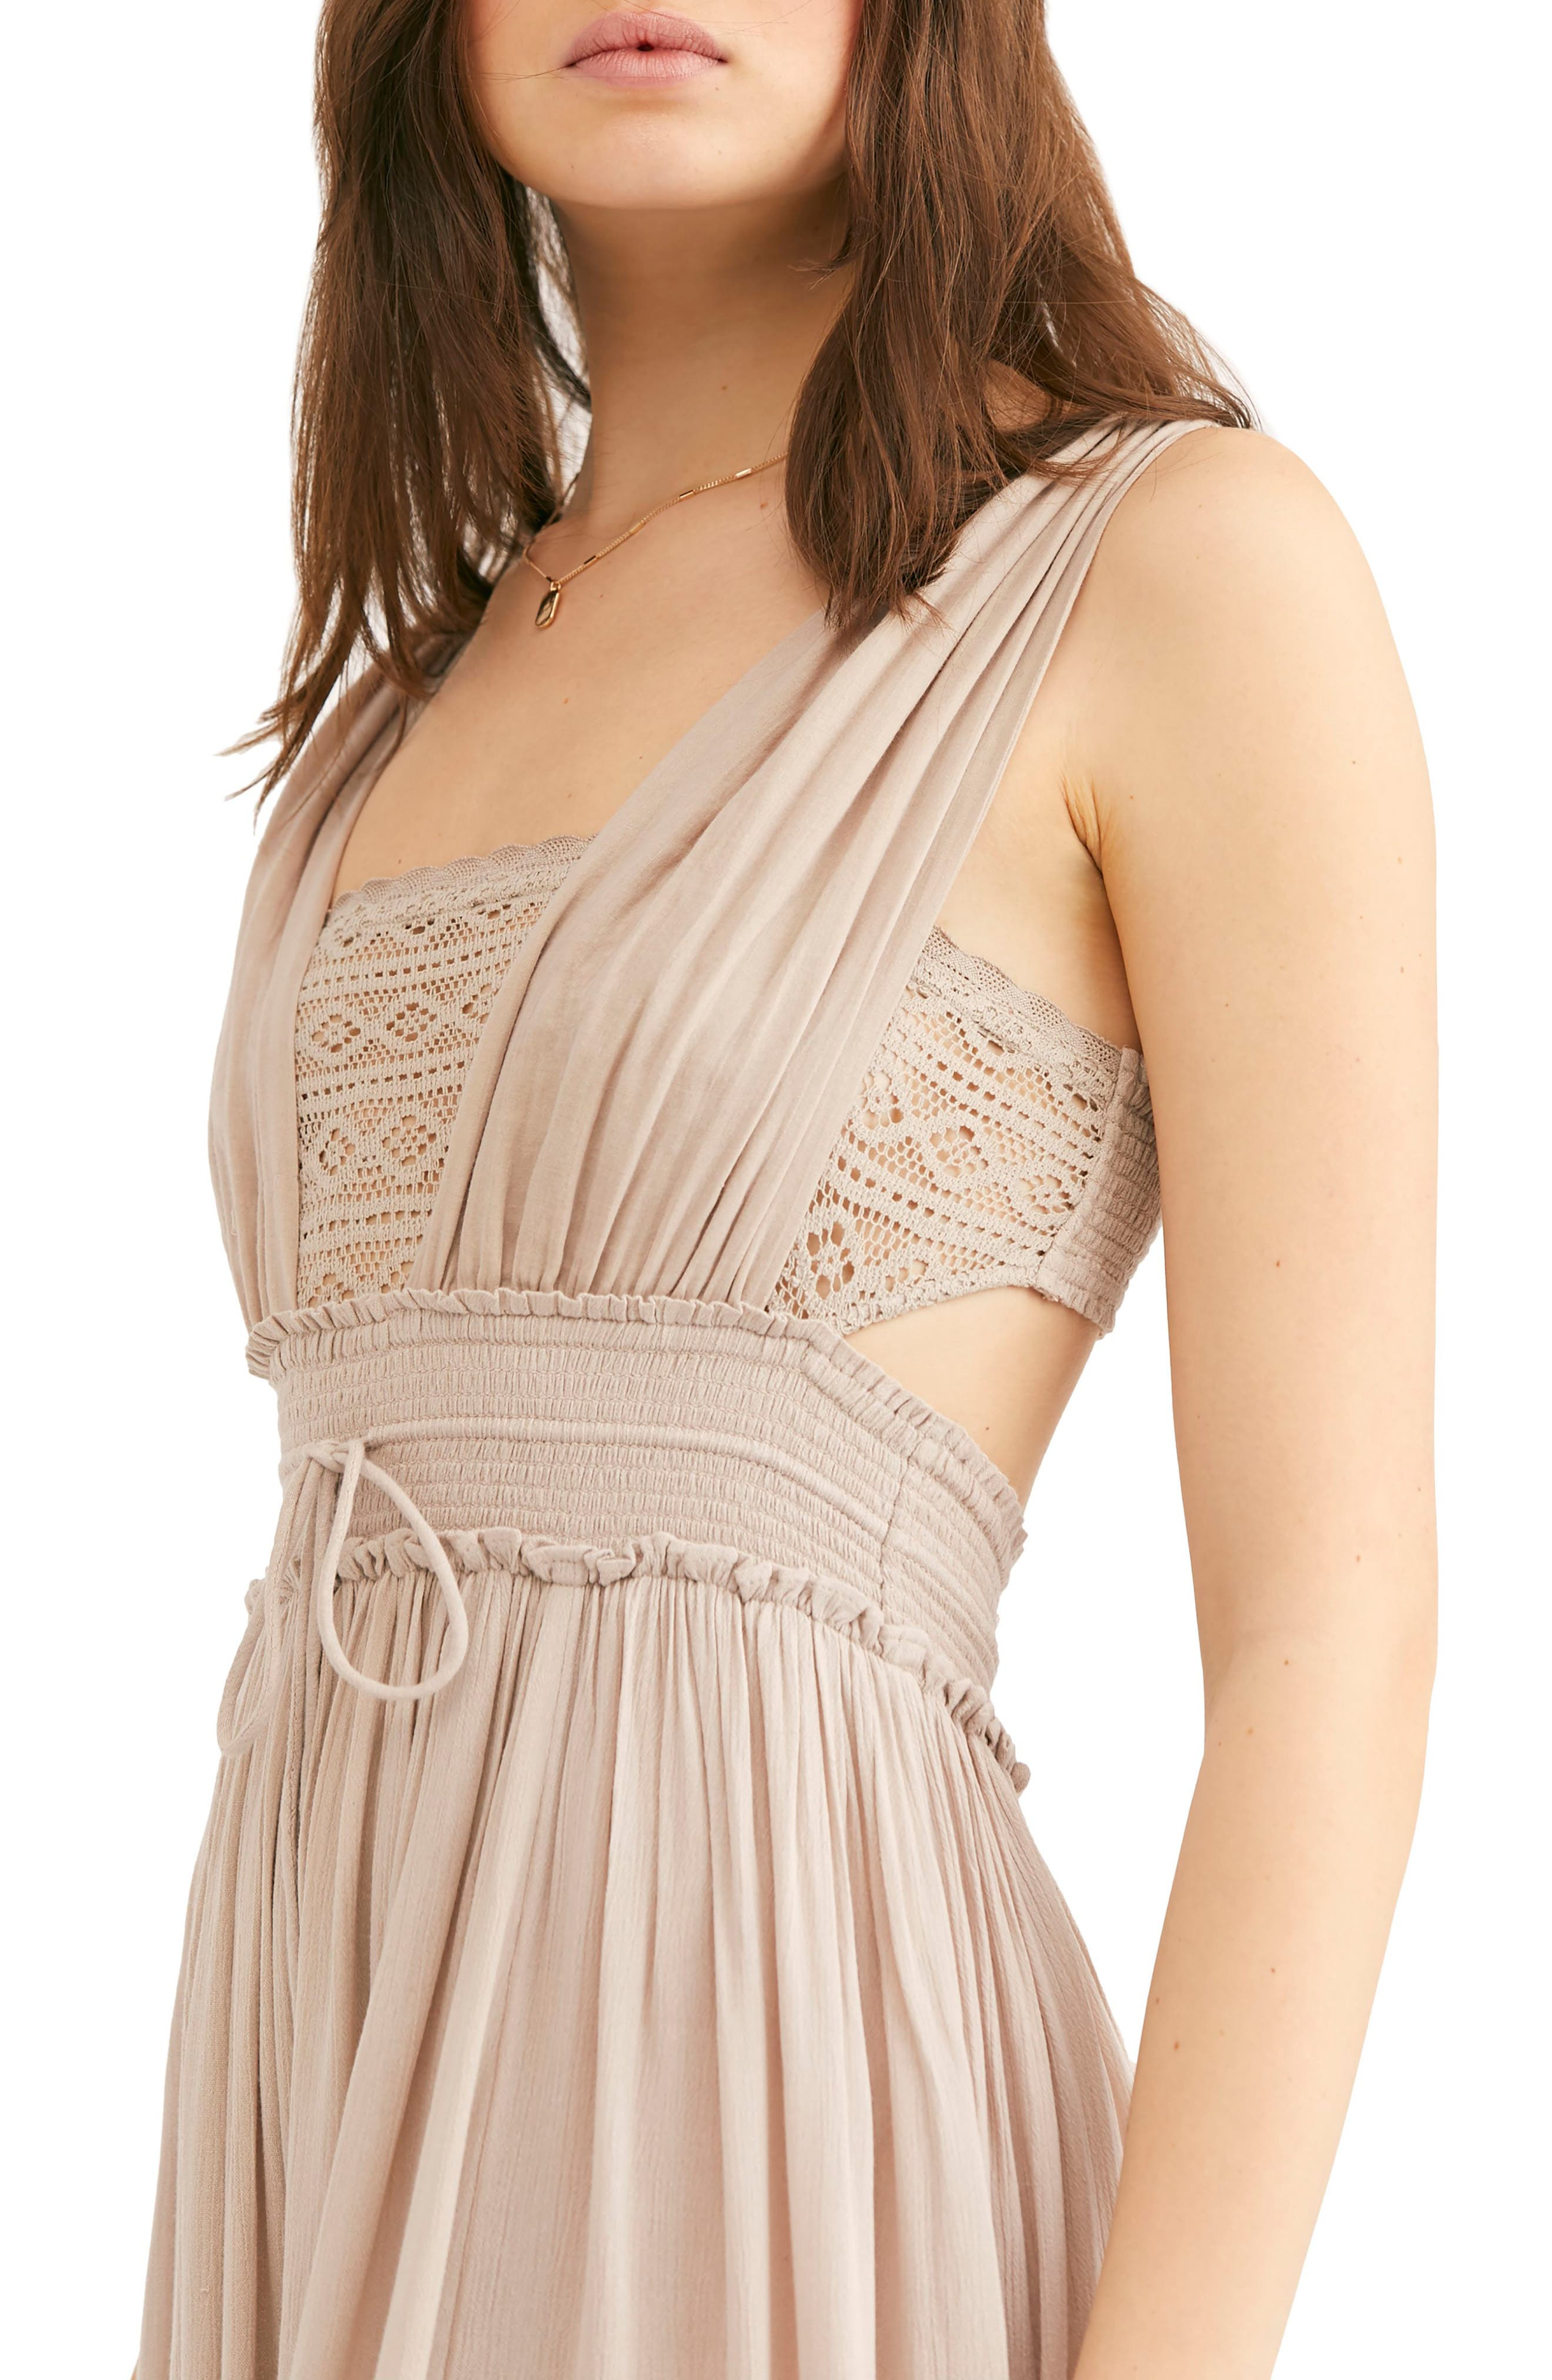 FREE PEOPLE,                             Endless Summer by Free People Santa Maria Maxi Dress,                             Alternate thumbnail 3, color,                             250